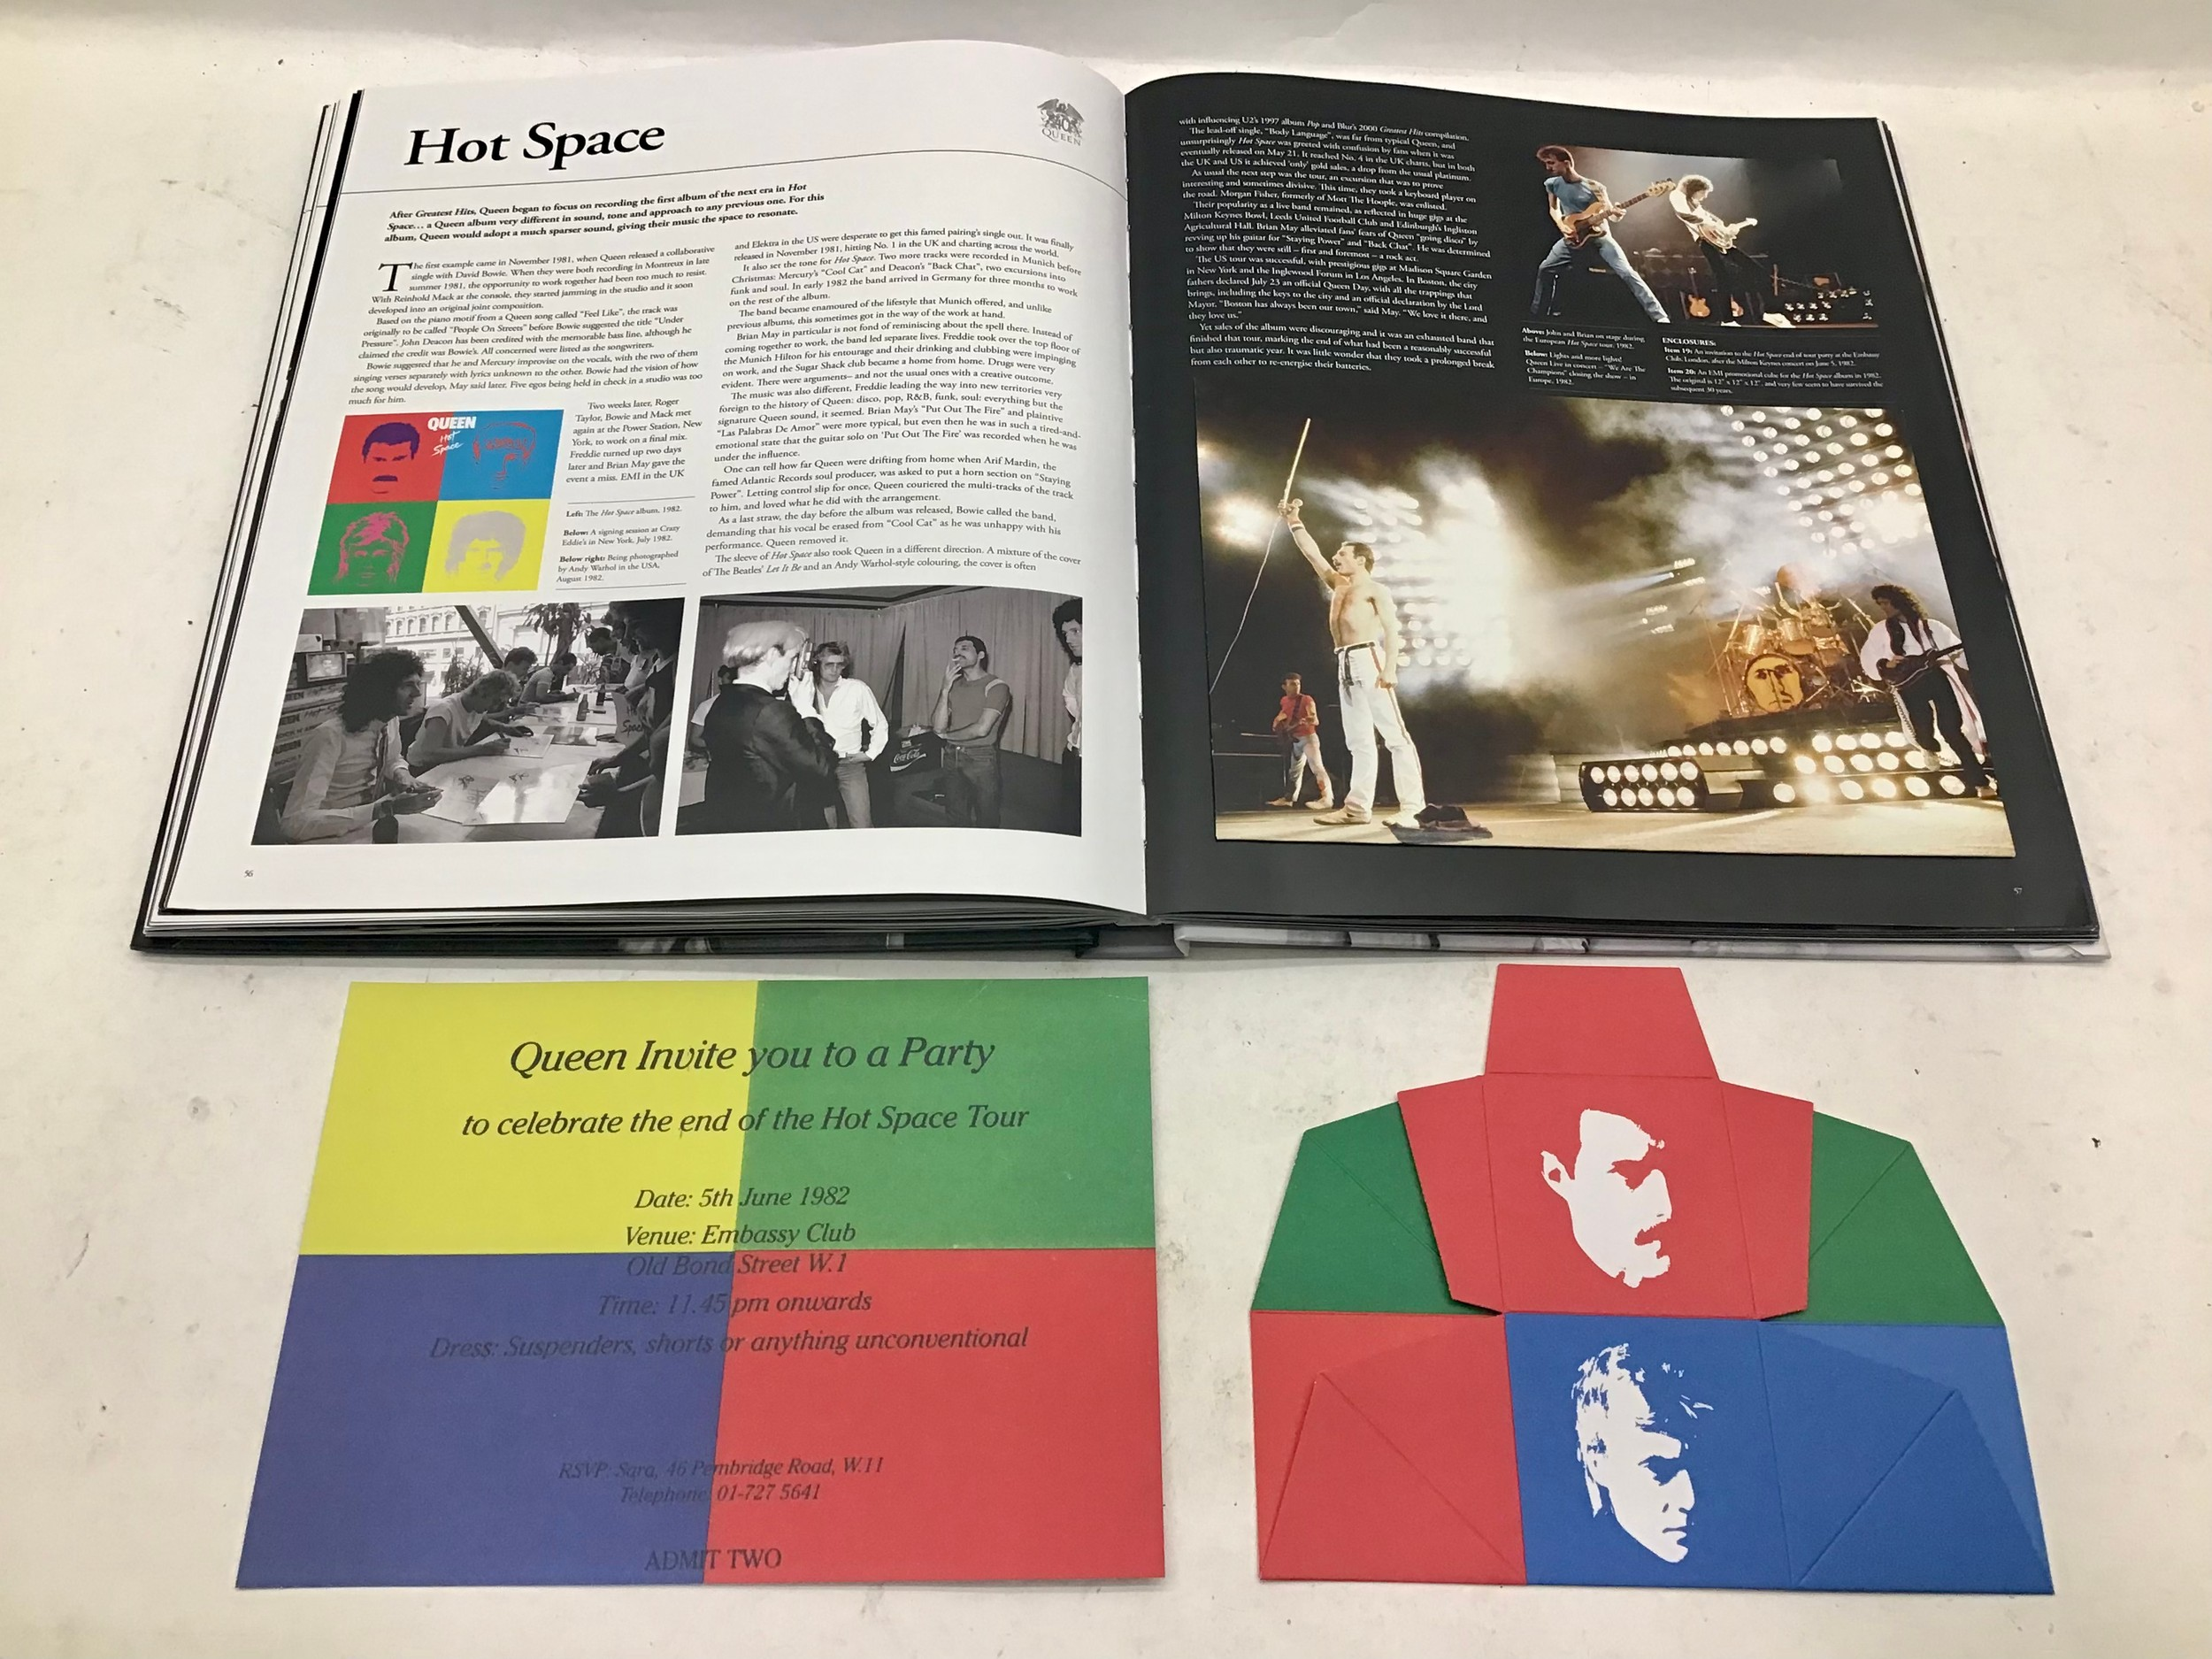 40 YEARS OF QUEEN. The book showcases the band, its members, recordings and concerts through - Image 5 of 6